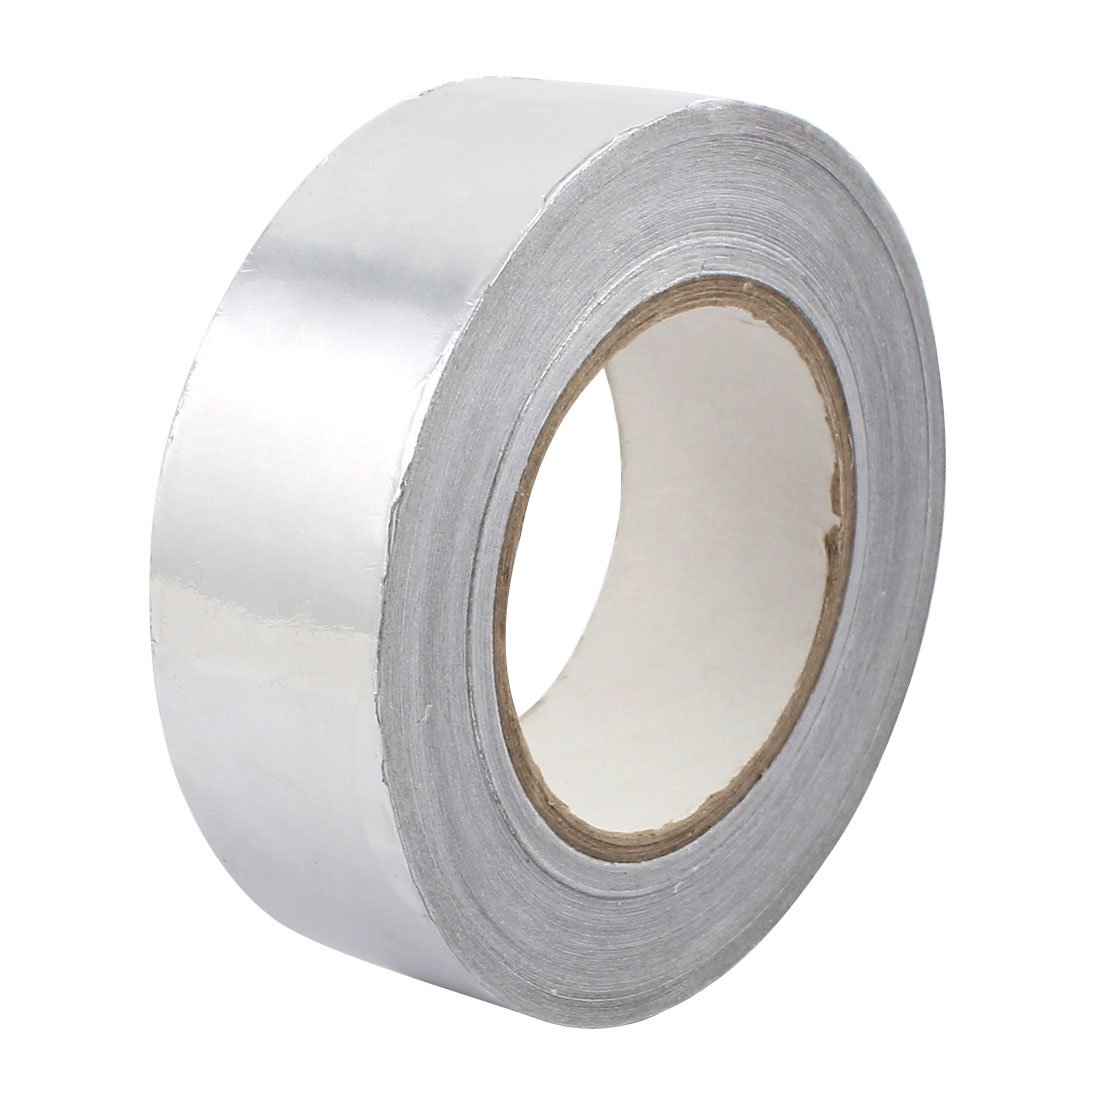 uxcell 40mm Width 0.06mm Thickness Aluminum Foil Tape Shield Duct Repair 50m Length